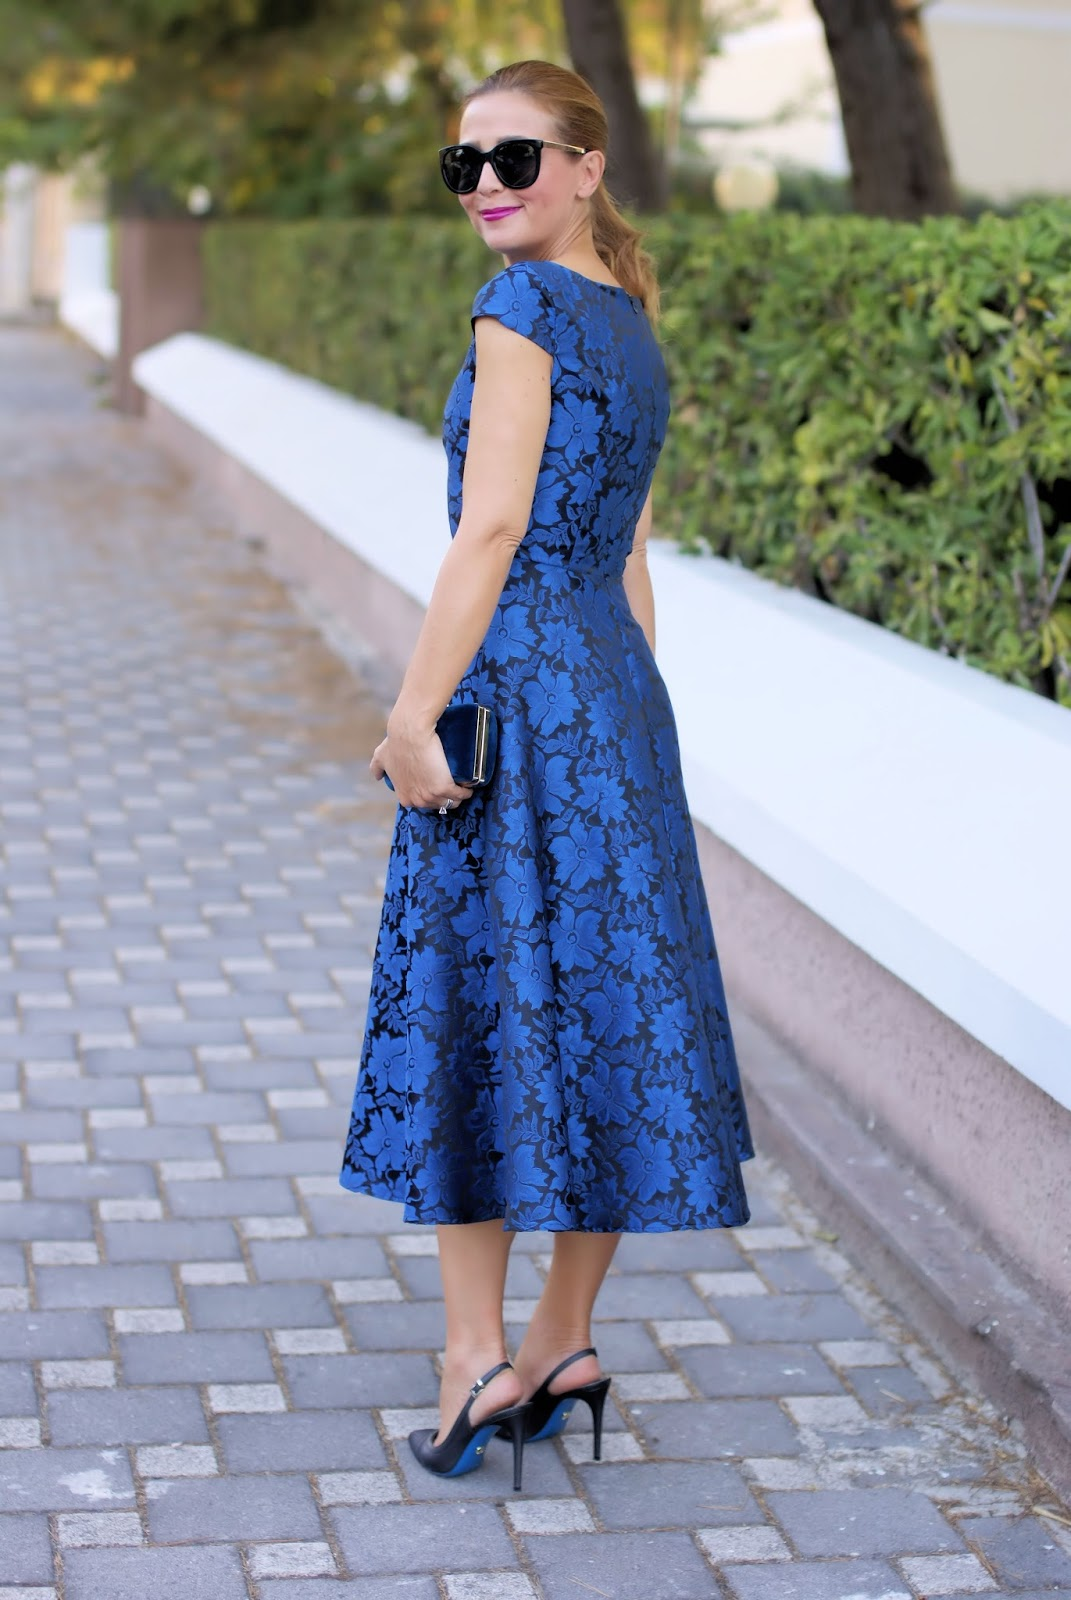 Blue elegant jacquard midi dress from Metisu on Fashion and Cookies fashion blog, fashion blogger style